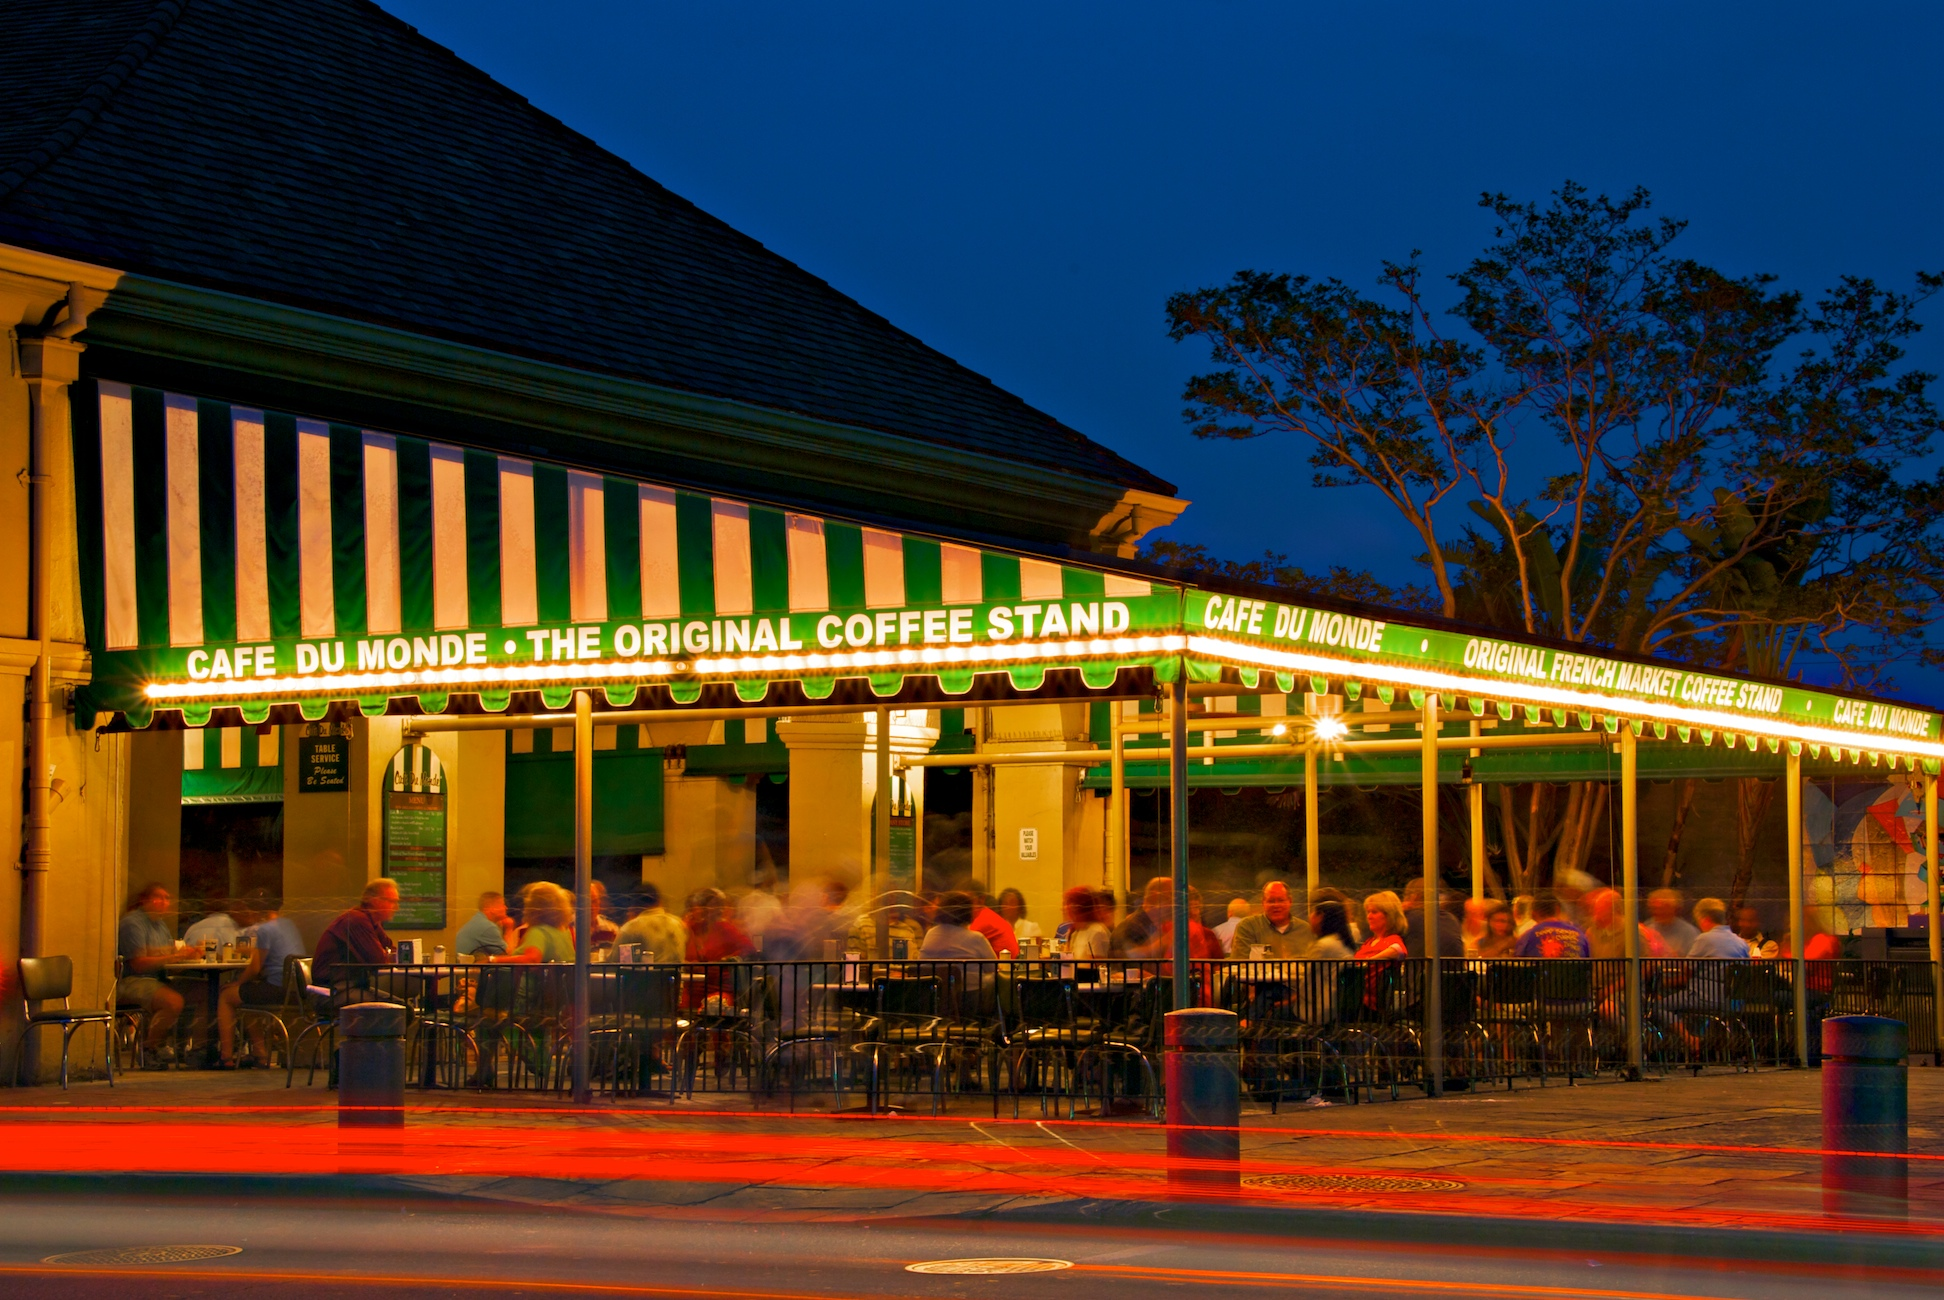 Cafe Du Monde HD Wallpaper Background Image 1944x1300 ID 1944x1300